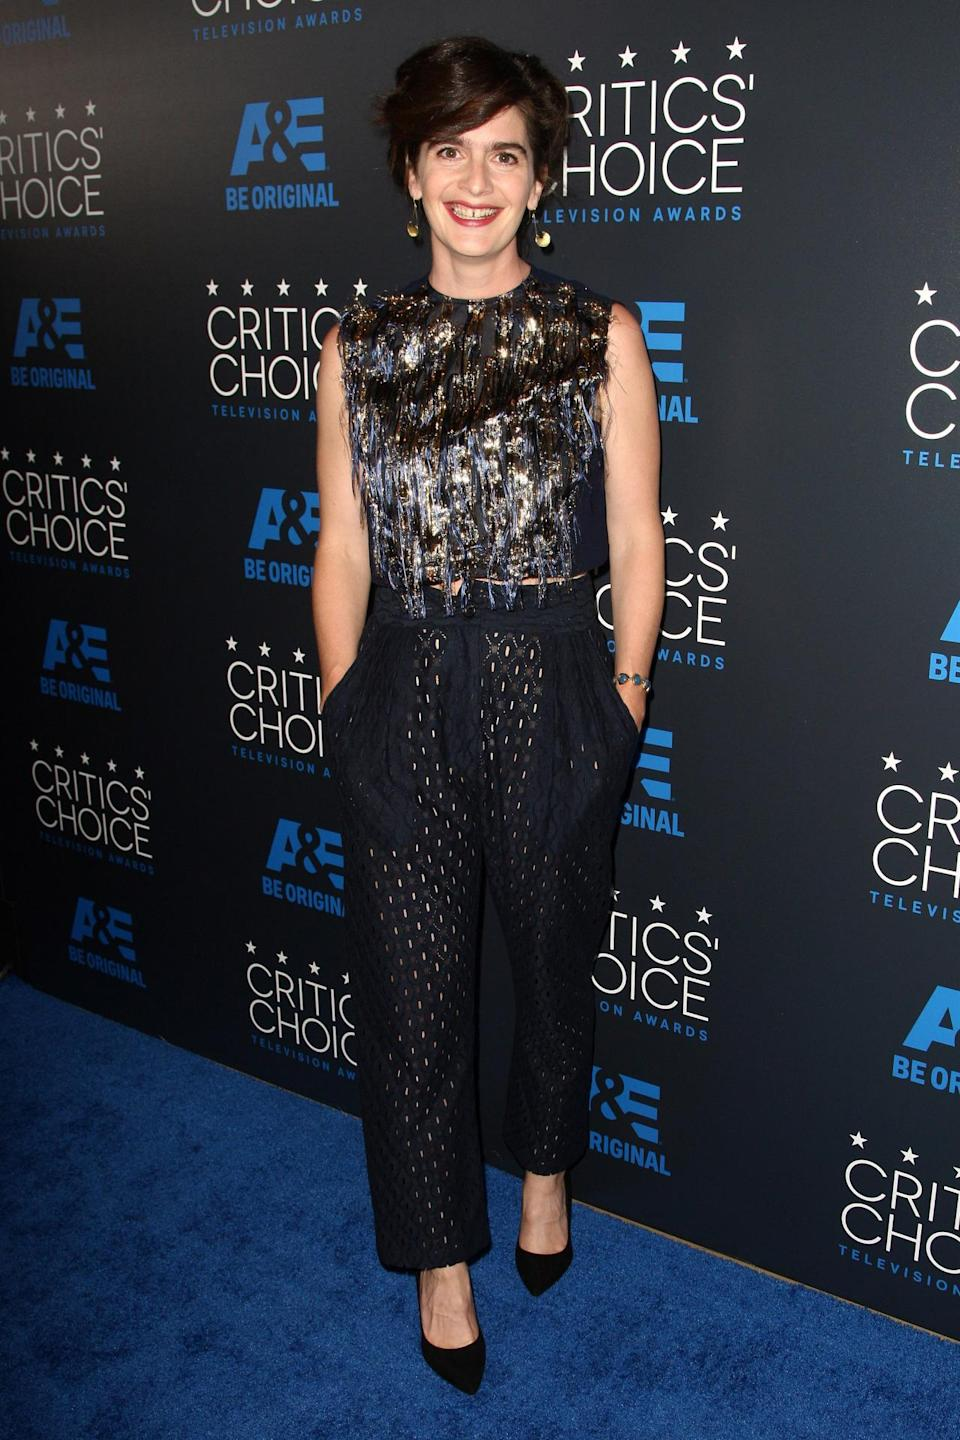 Gaby Hoffman's crop top and trouser combo weren't your typical crop top and trouser combo. The top, longer than most, showed just a hint of skin — the appropriate amount — and was frilly and fun with metallic embellishments. The pants with punctured holes were just as cool and interesting.